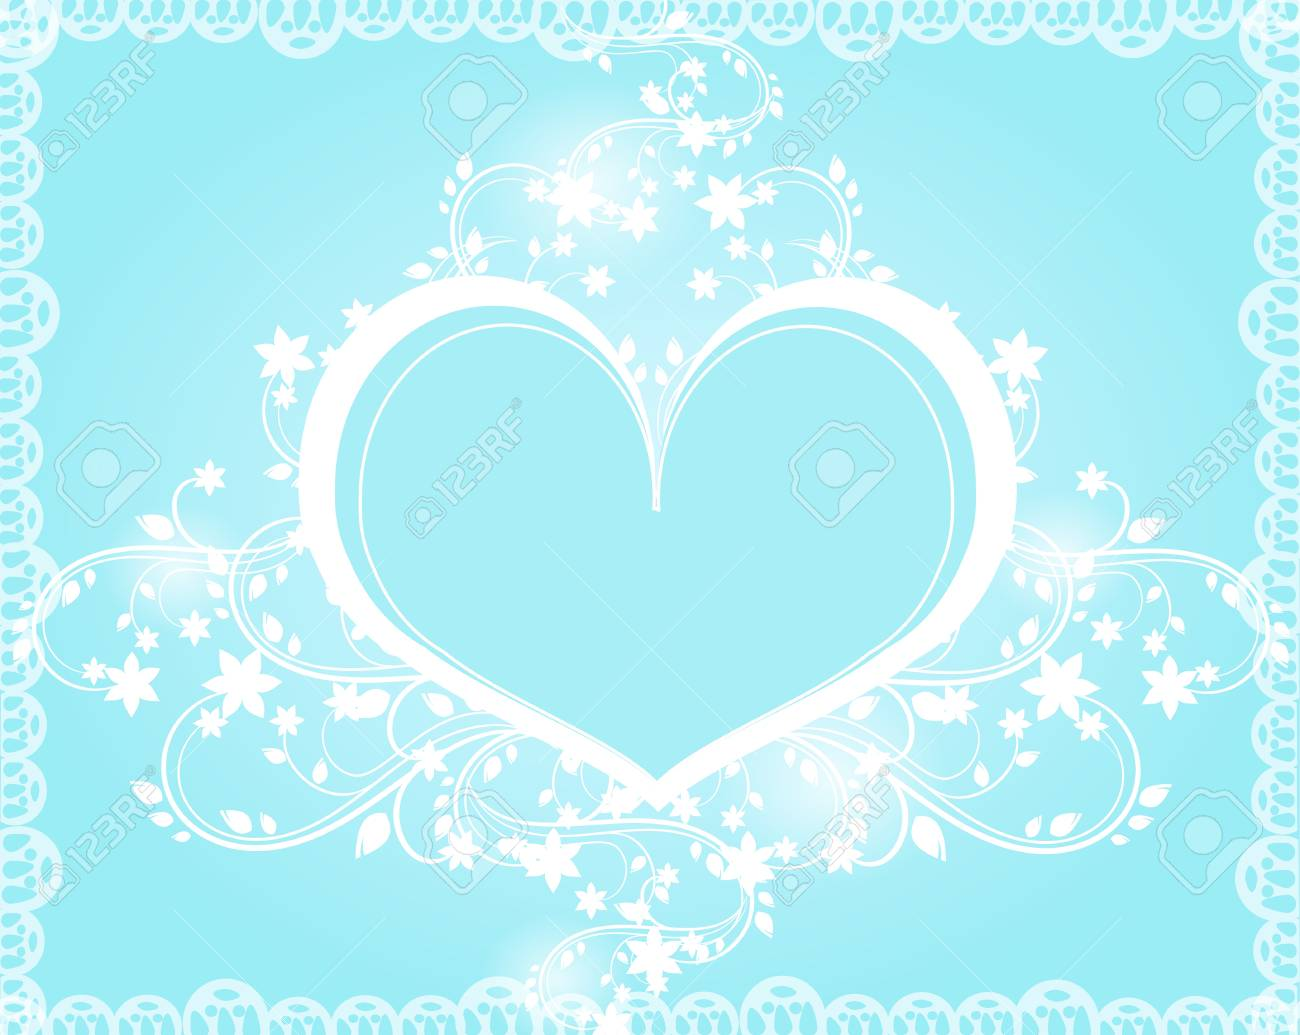 Wedding Card With White Heart Ornaments On Light Blue Background Stock Photo Picture And Royalty Free Image Image 43324809